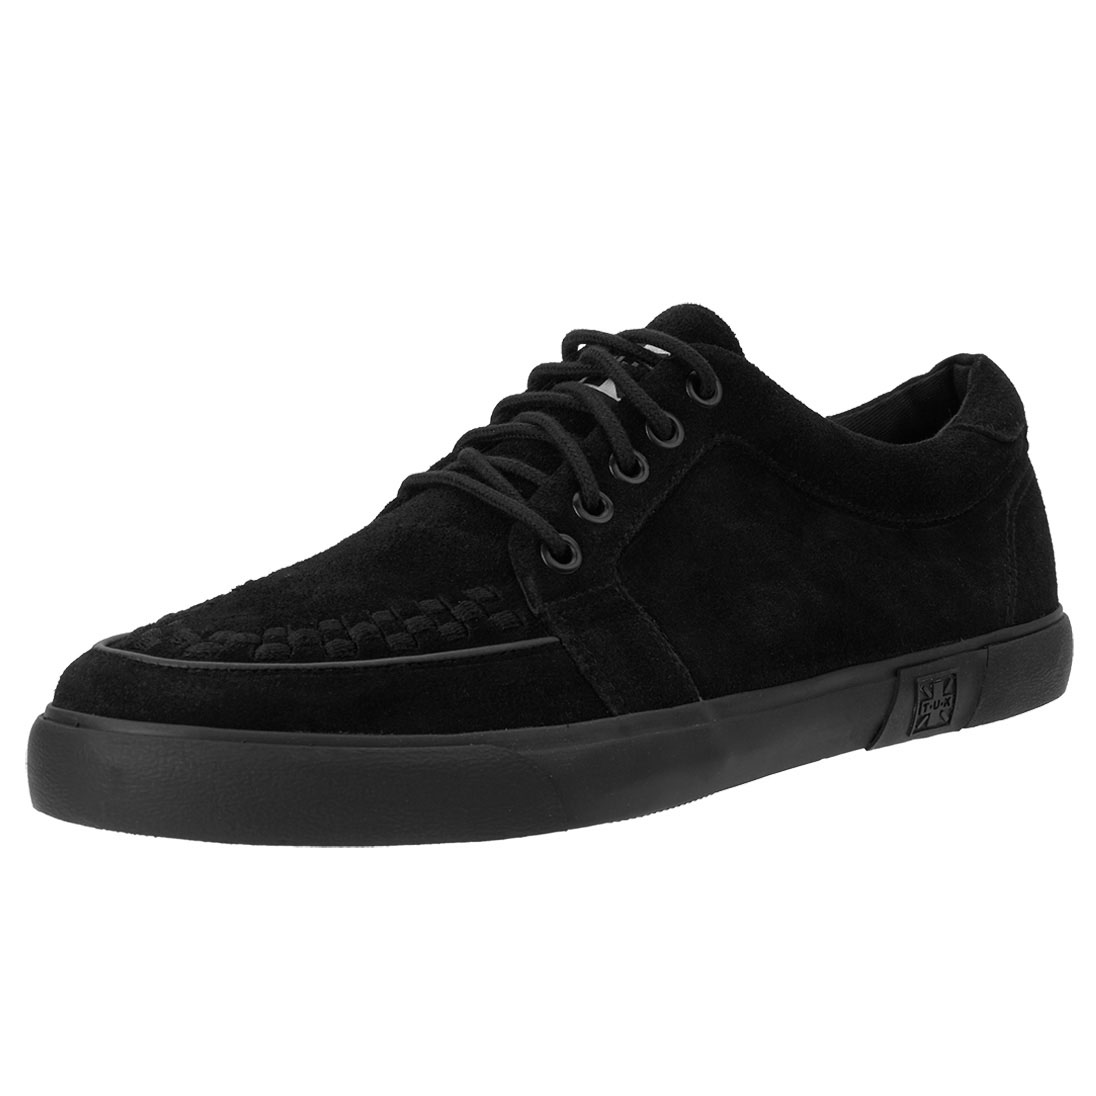 Black Suede No Ring VLK creeper style sneaker by Tred Air UK